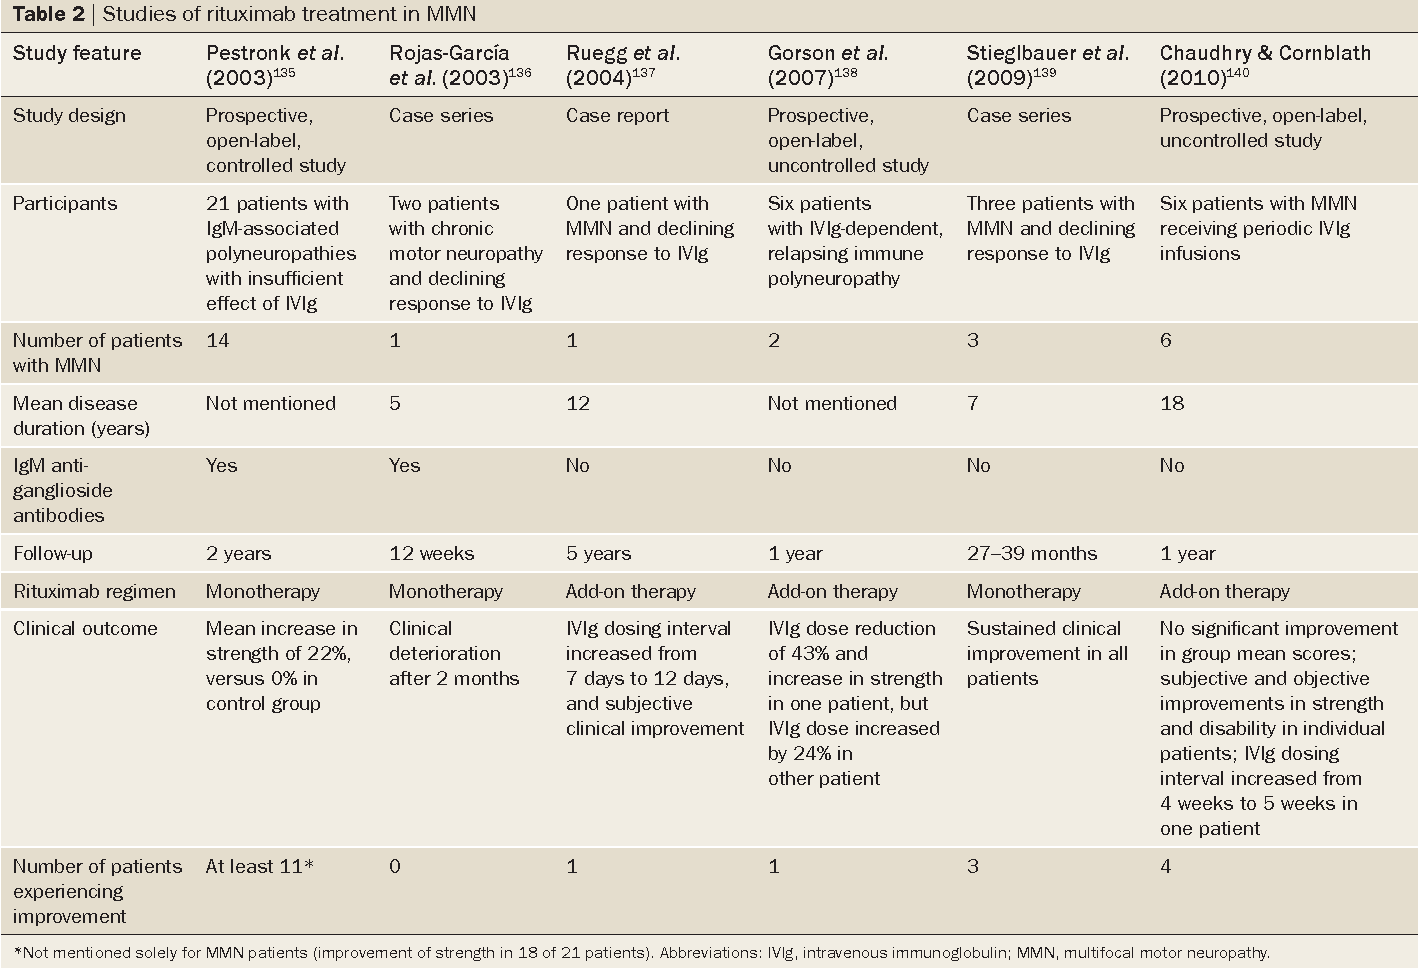 Table 2 from Multifocal motor neuropathy: diagnosis, pathogenesis